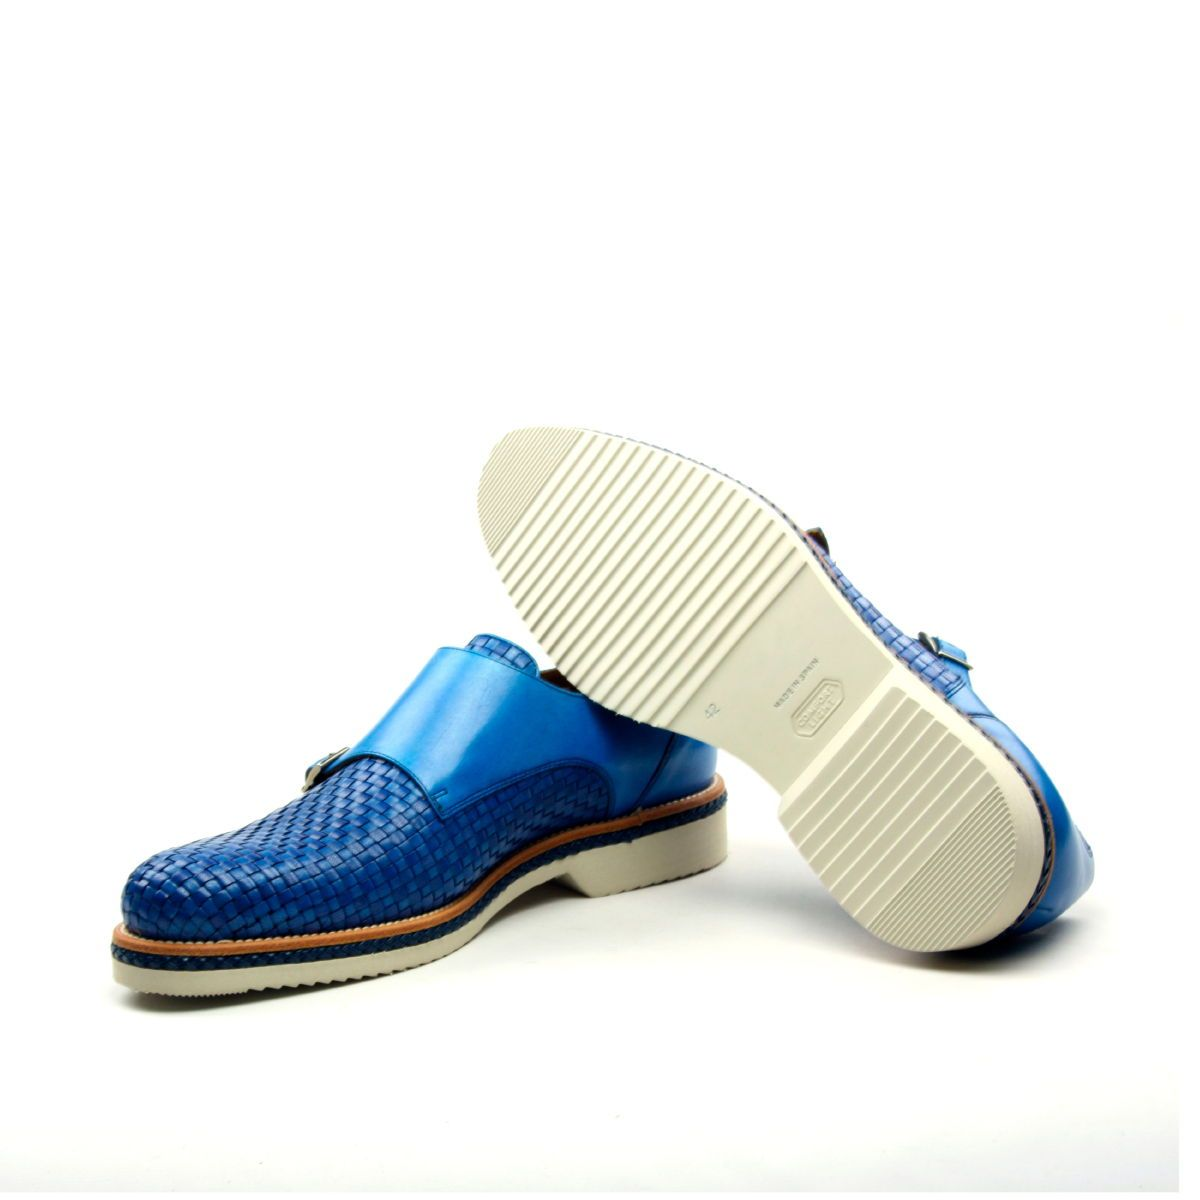 Omine Woven Double Monk Strap Shoe